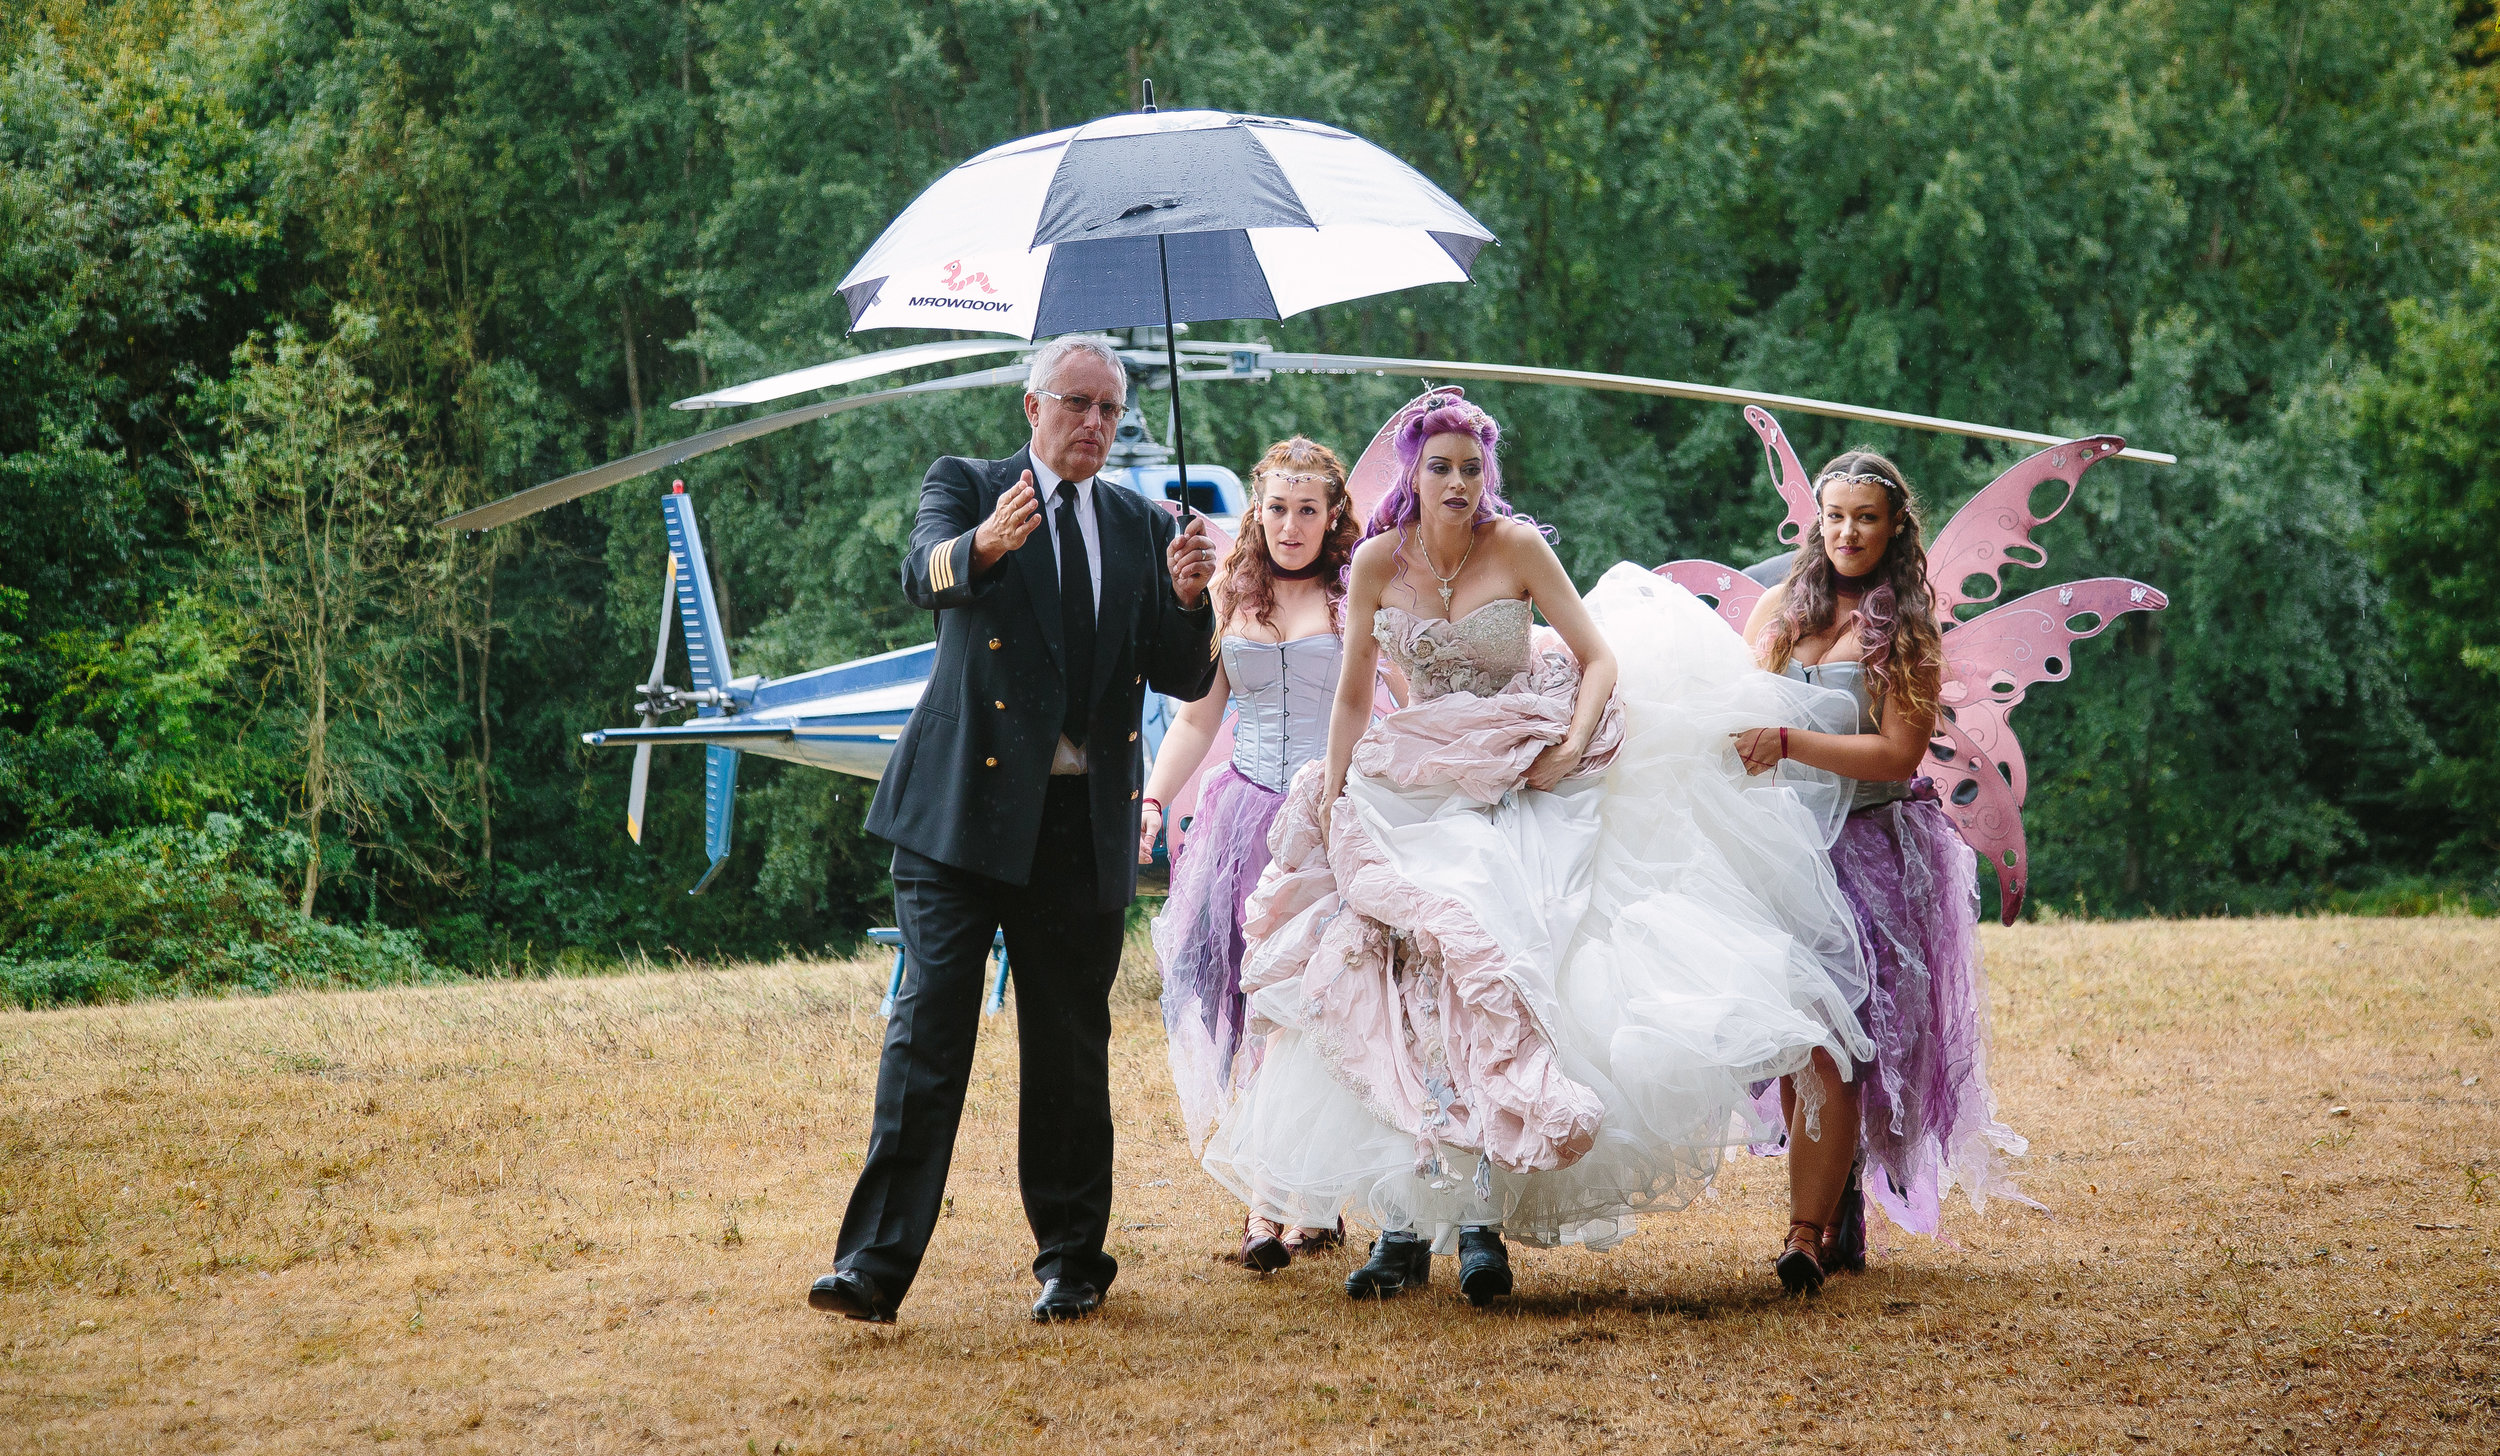 helicopter-bride-pilot-umbrella-essex-movie-theme-wedding-20